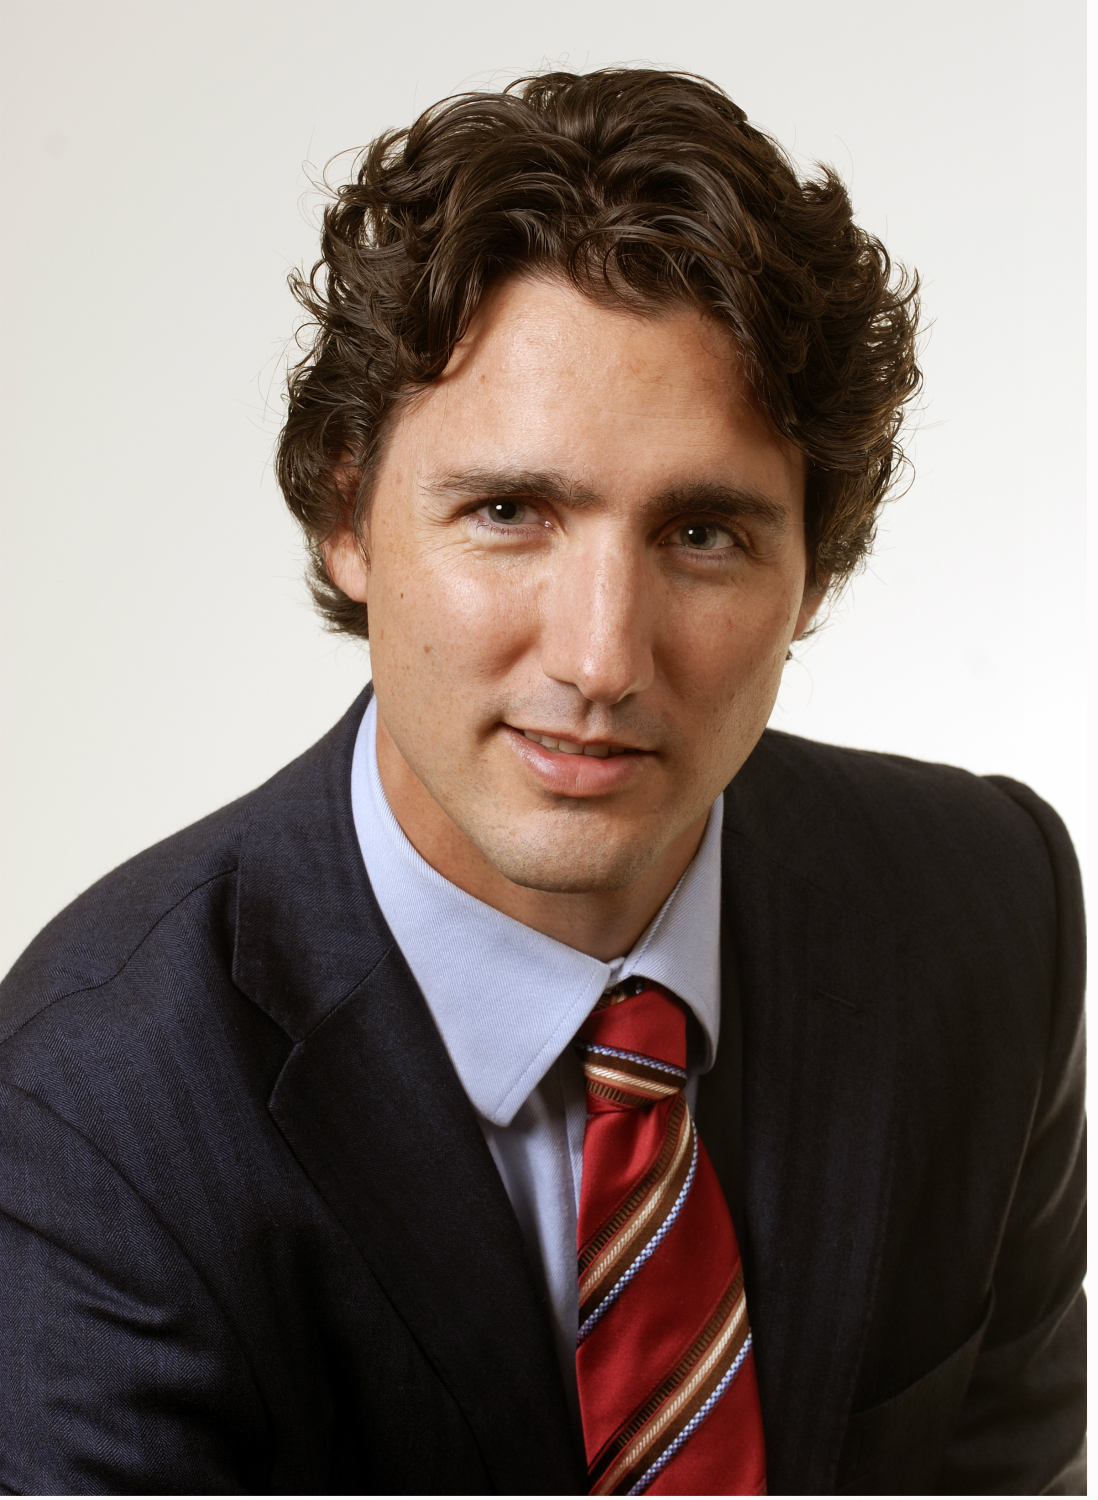 Famous People: Famous People From Canada